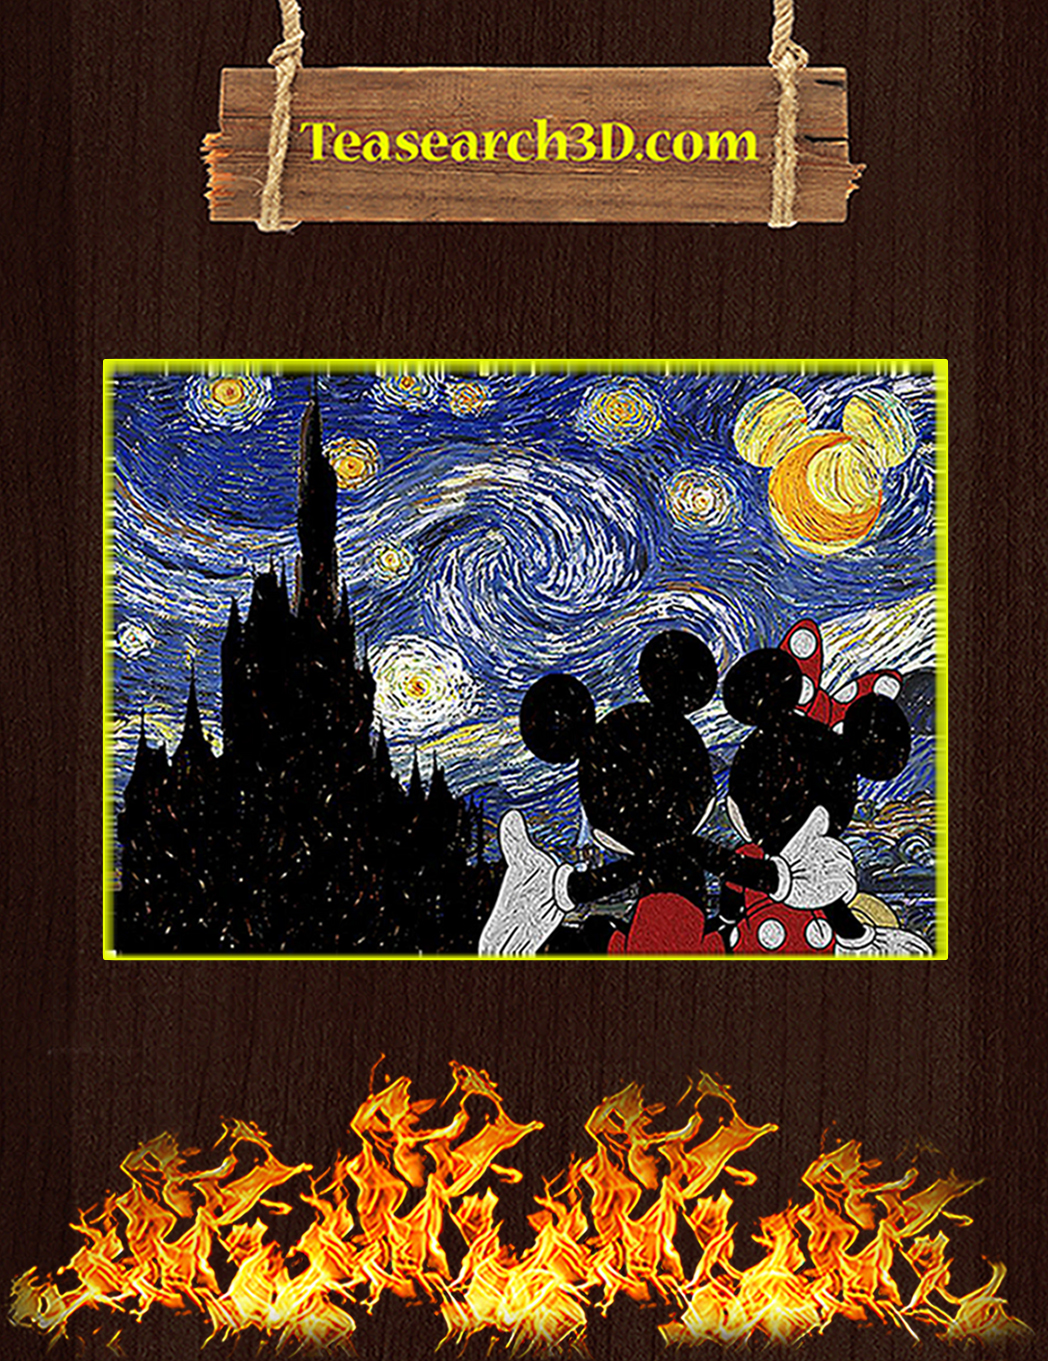 Mickey and minnie starry night poster A1